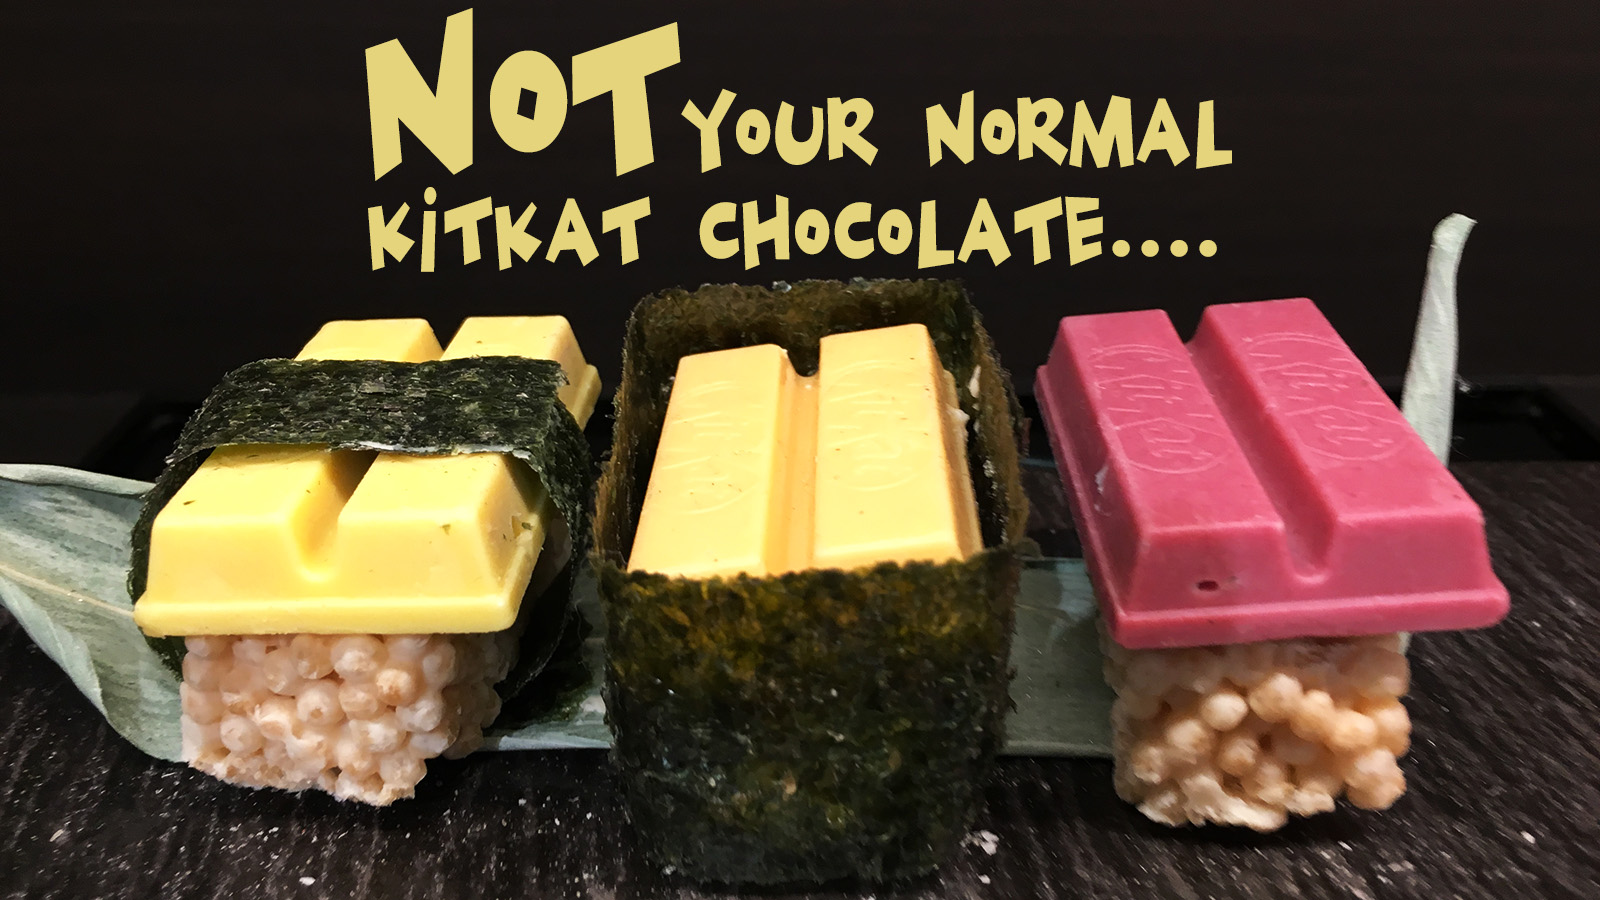 It's a sushi sets featuring a sushi omelet KitKat, a sea urchin sushi candy and a tuna sushi bar. (Shen Lu/MEDILL)